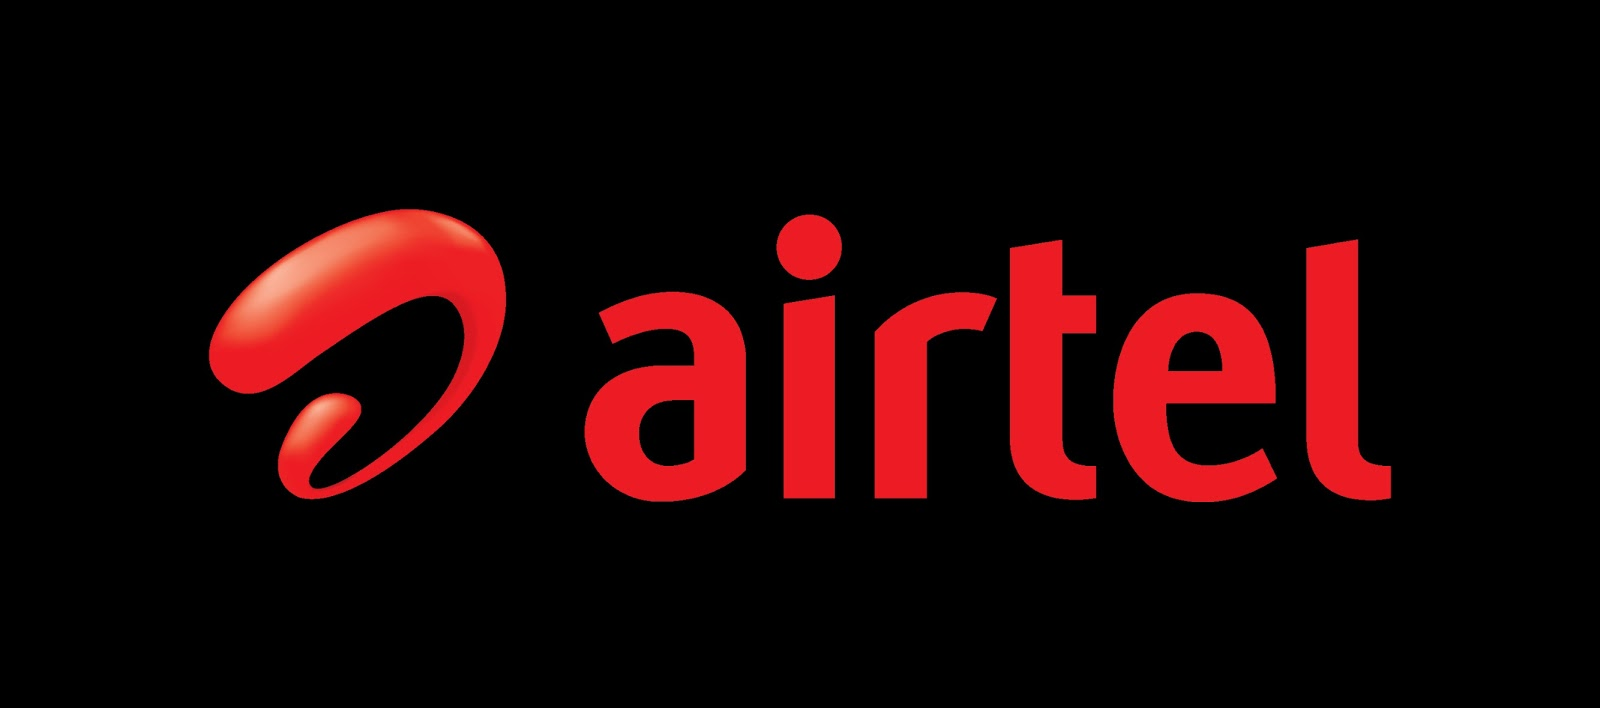 airtel hacks Post edited: thanks to shreevardhan, i have decided to remove this post as it encourages hacking personally i am fine with minor hacks which doesn't harm anyone but.